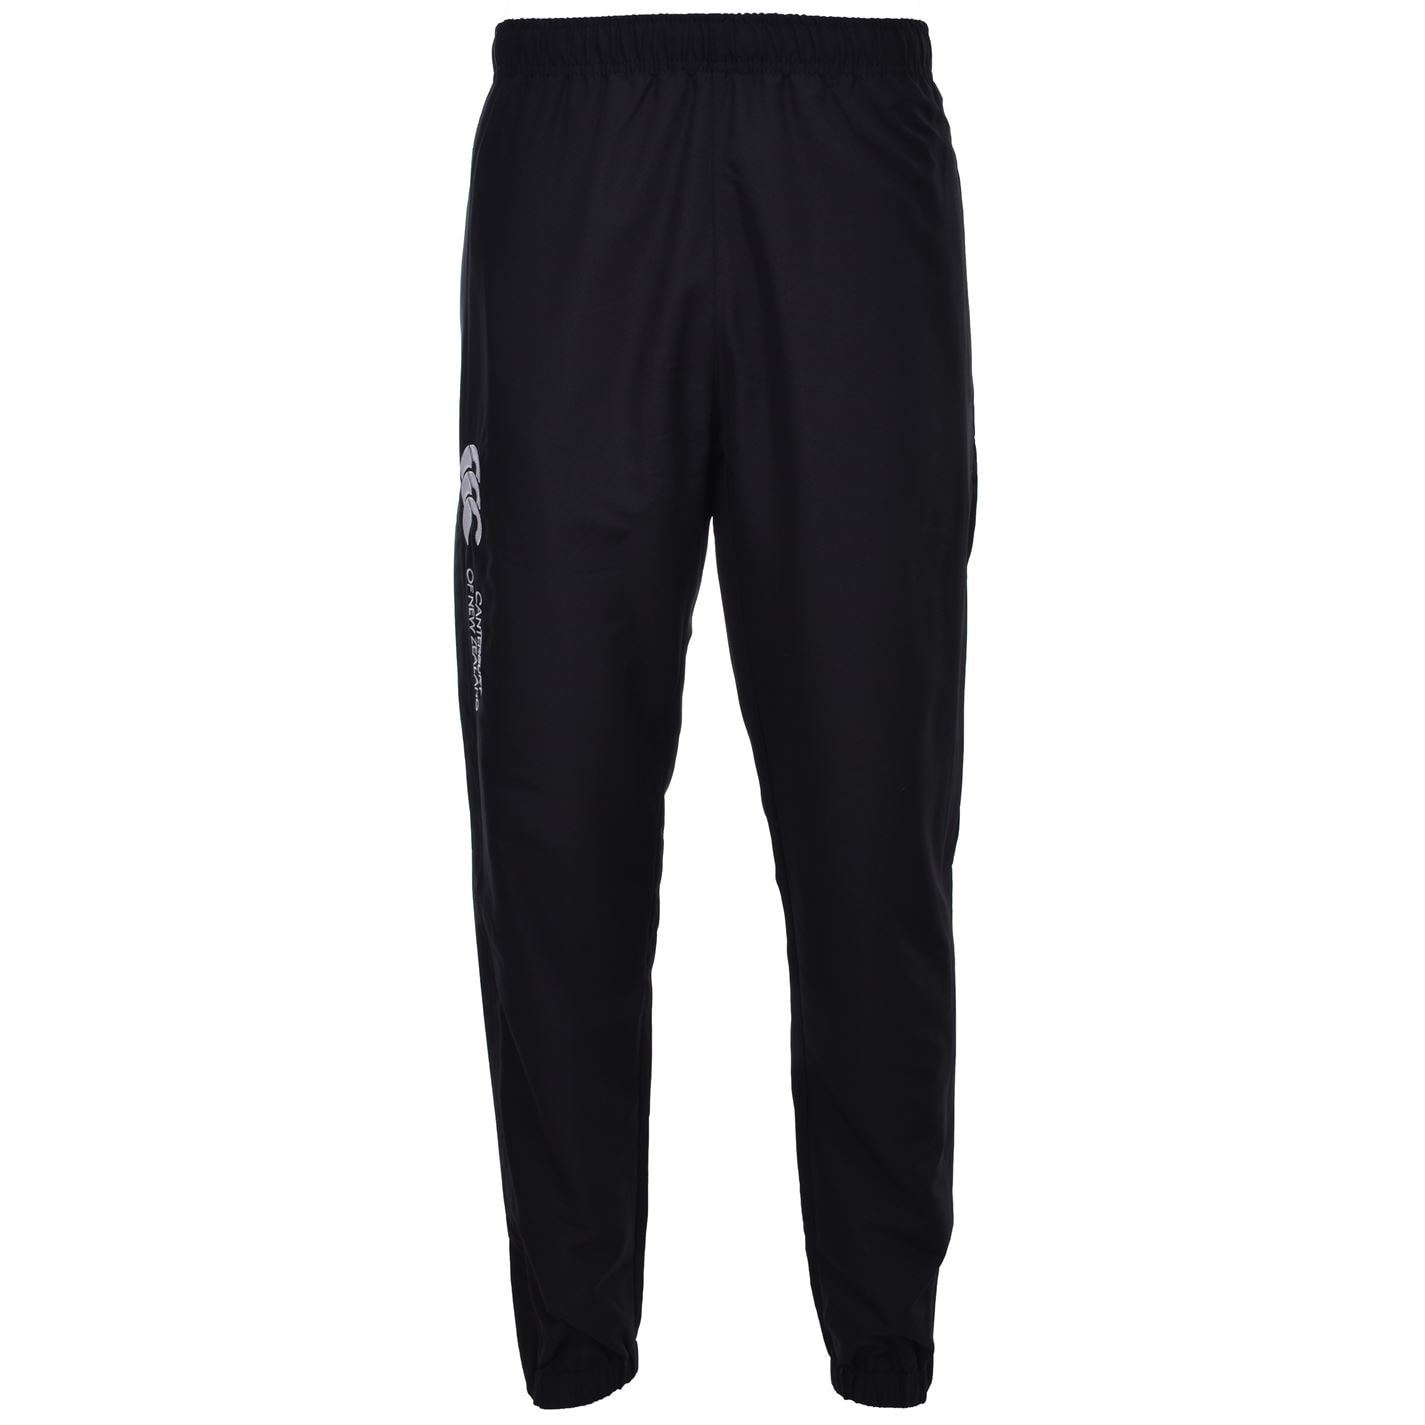 Canterbury-Cuffed-Stadium-Tracksuit-Pants-Mens-Rugby-Sweatpants-Fan-Bottoms thumbnail 4